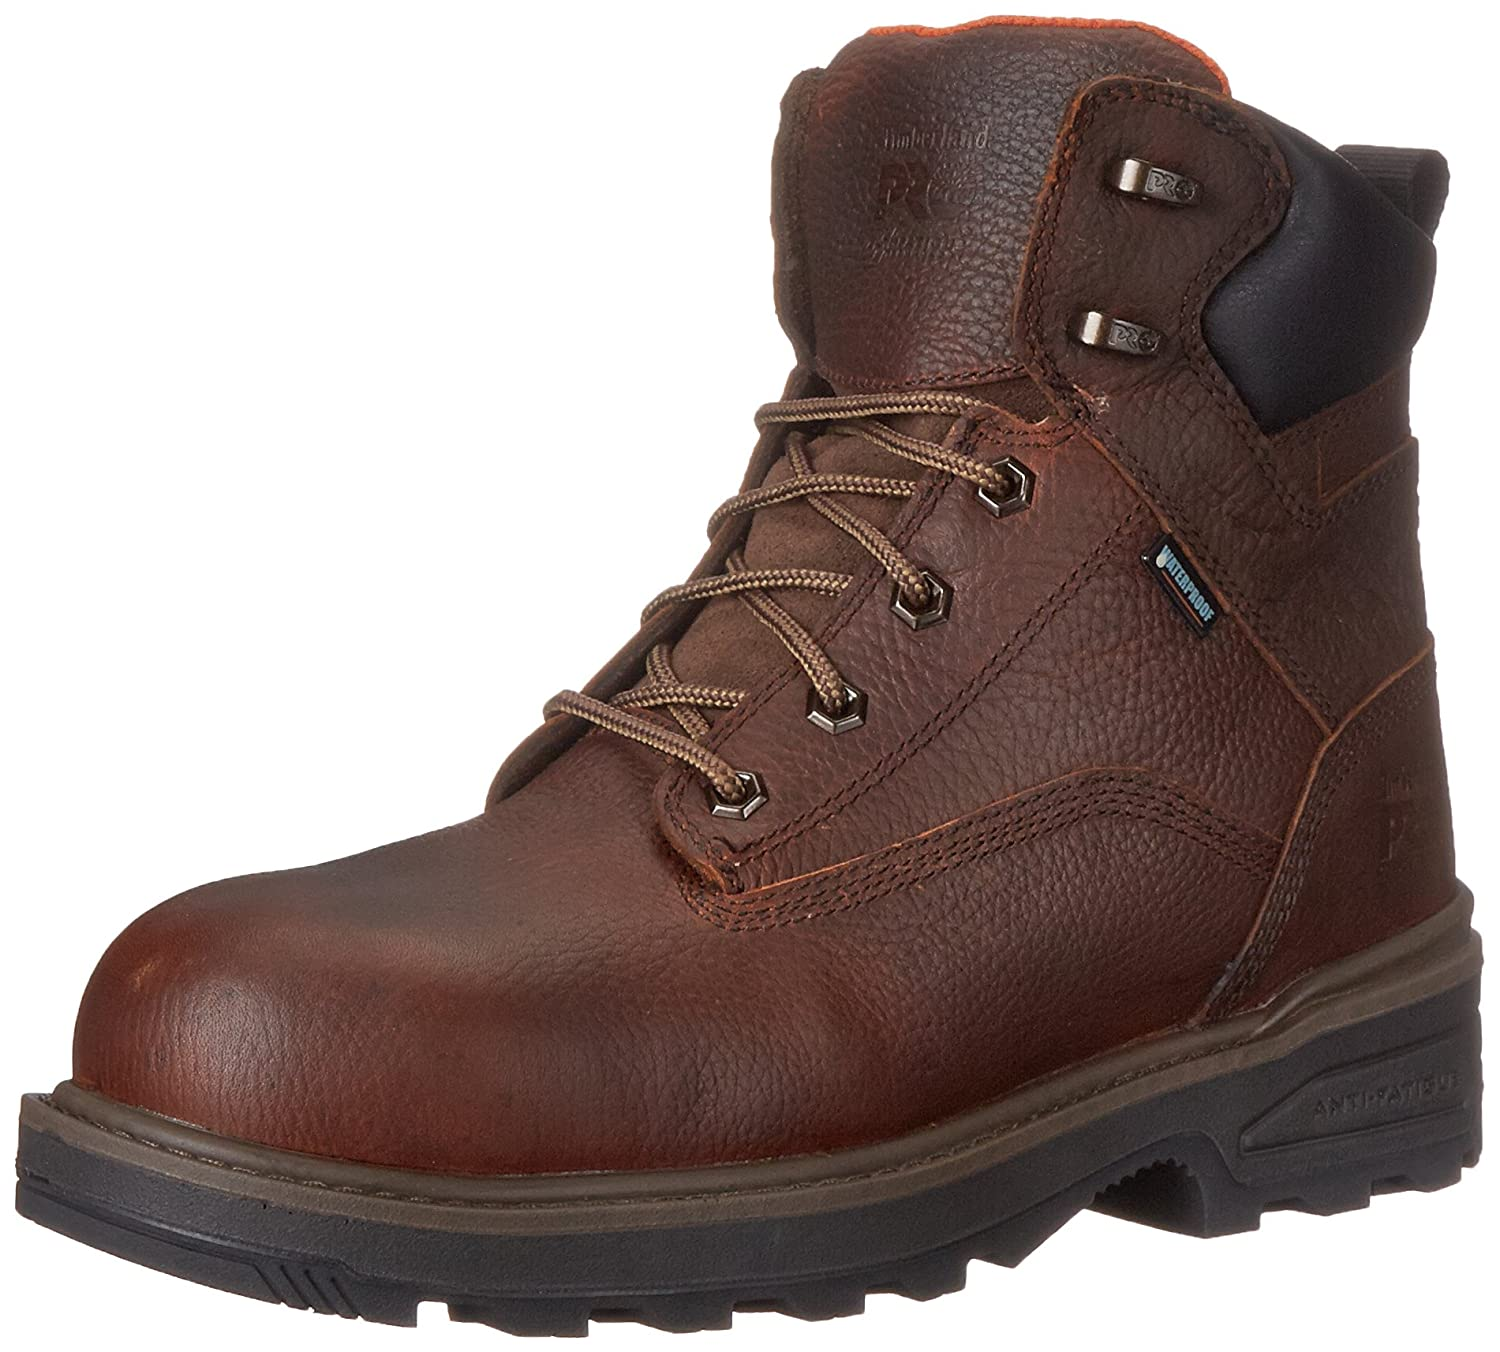 Timberland PRO メンズ B00SWVPN2O 10.5 D(M) US|Brown Tumbled Full Grain Leather Brown Tumbled Full Grain Leather 10.5 D(M) US